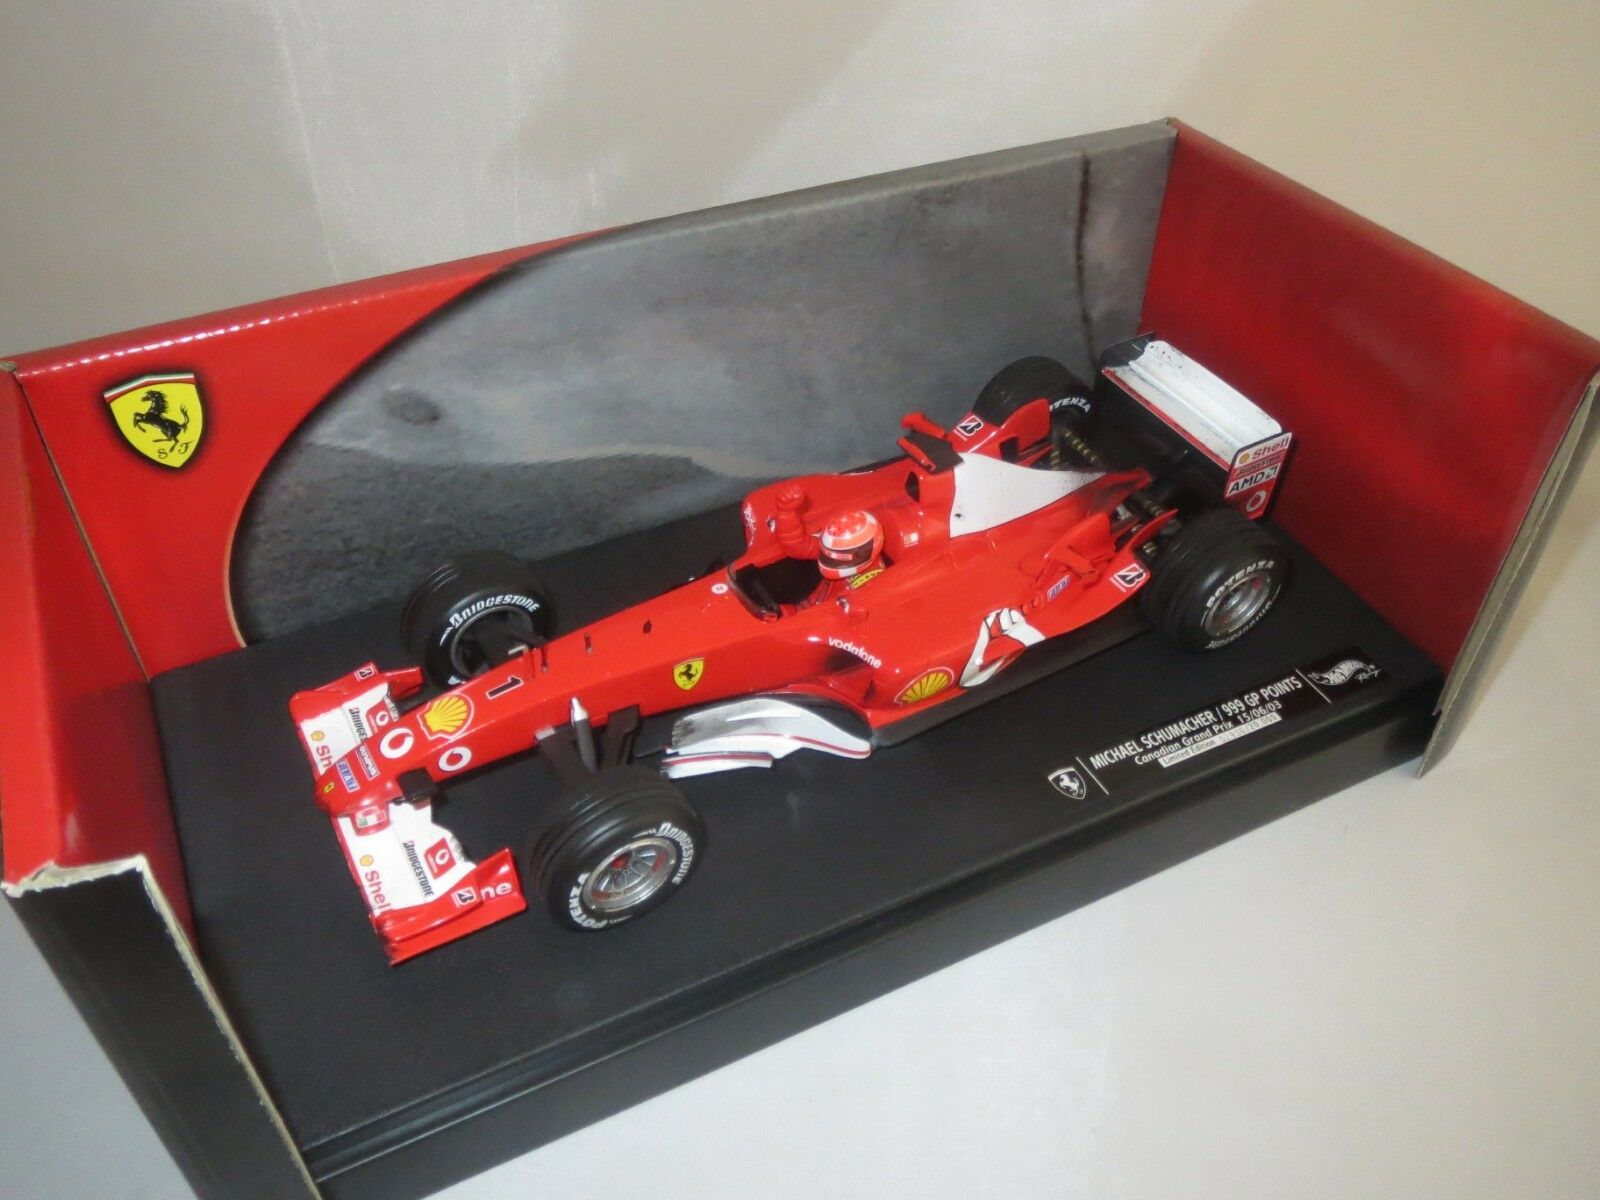 Mattel c5938  m. schumacher  (Canadian Grand Prix)  2003   18 embalaje original (f47)